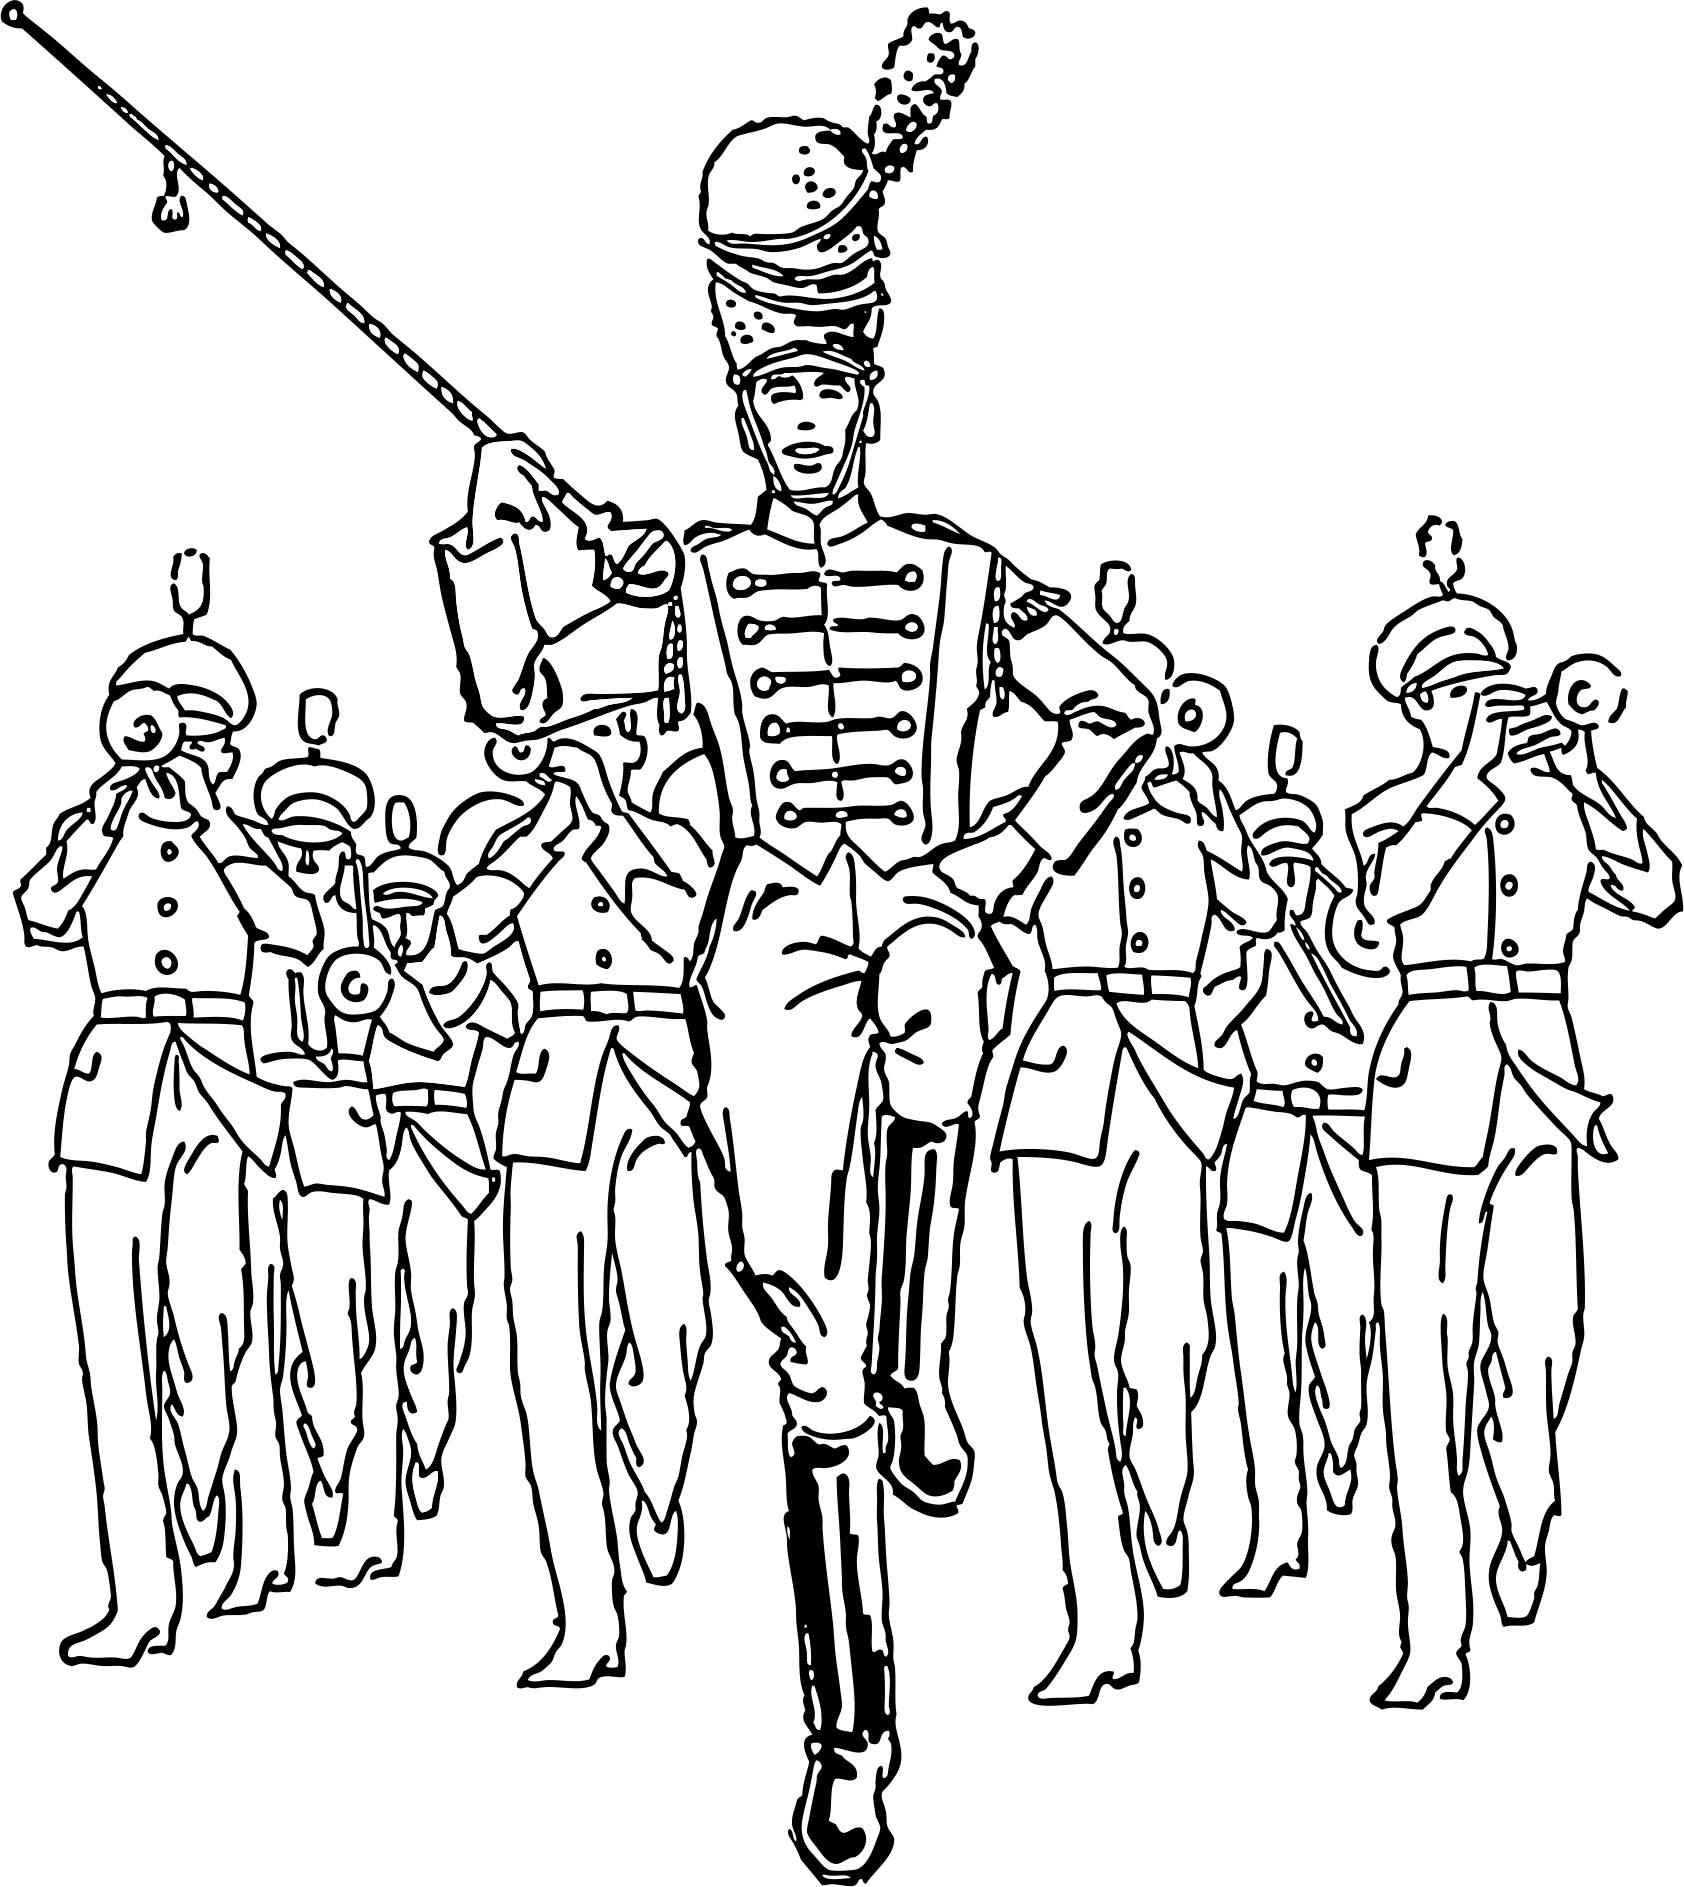 hbcu marching bands clip art